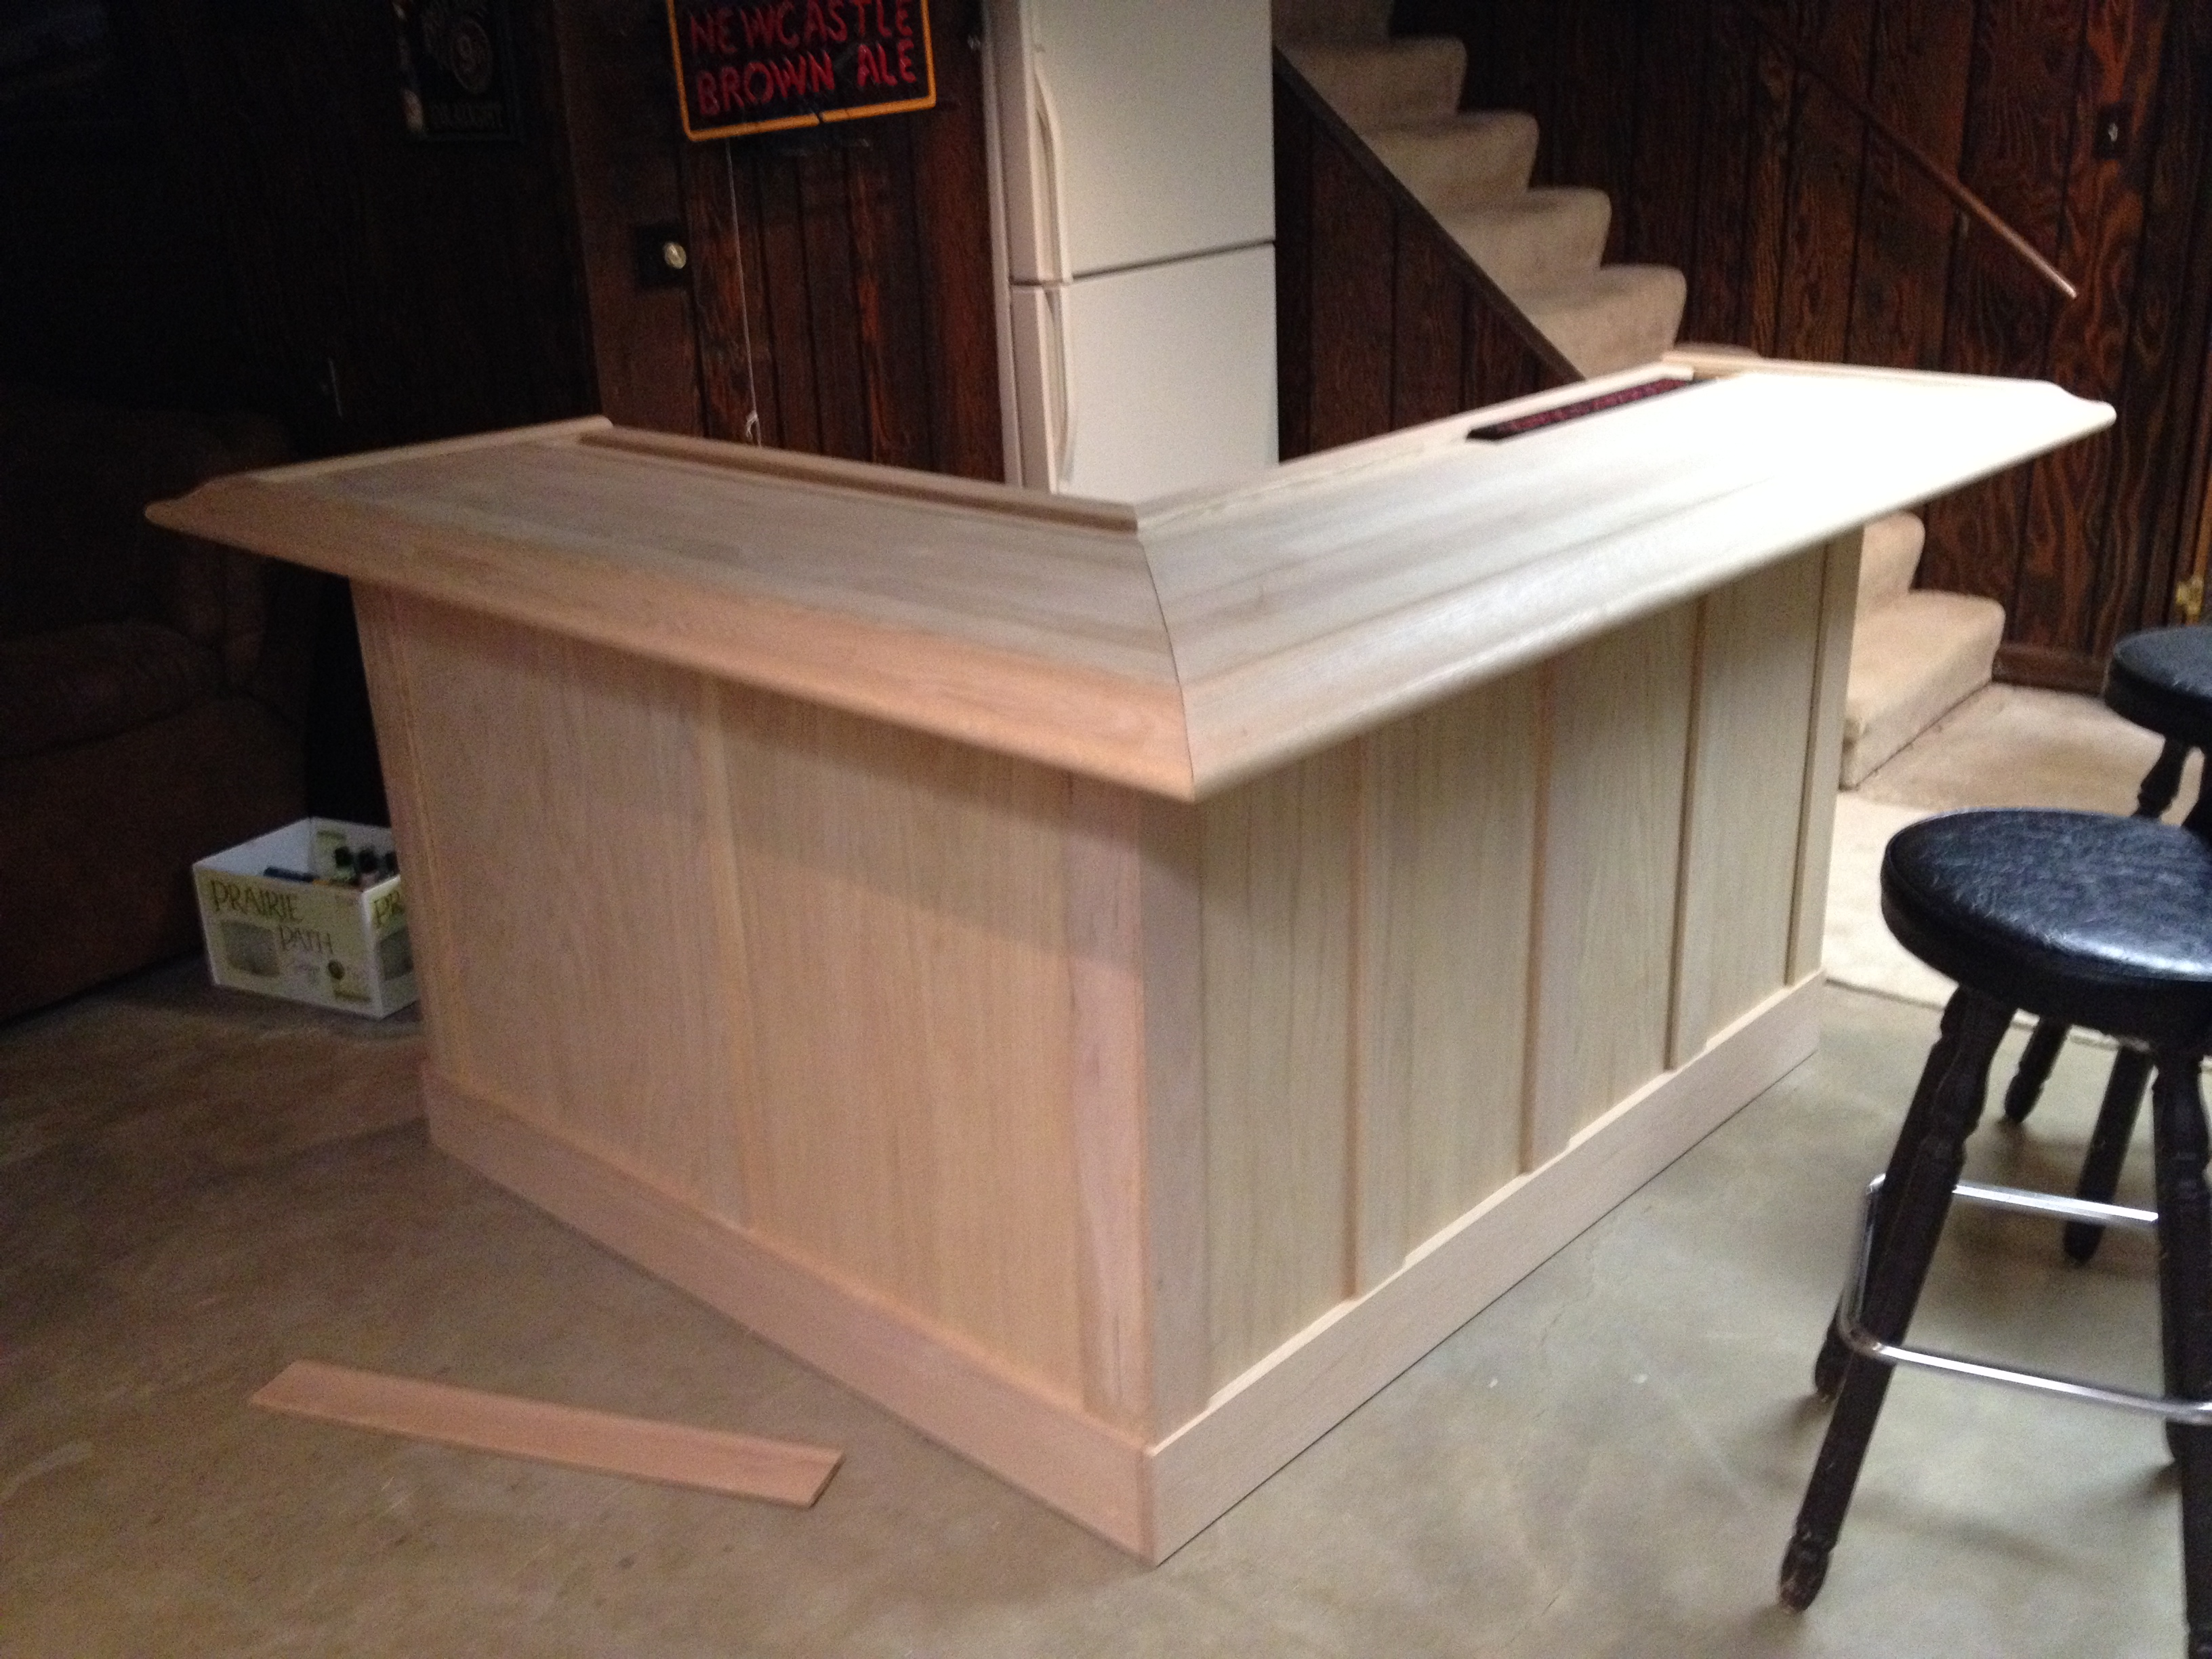 diy basement bar.  2014 04 15 07 14 38 John Everson Dark Arts Blog Archive DIY How To Build Your